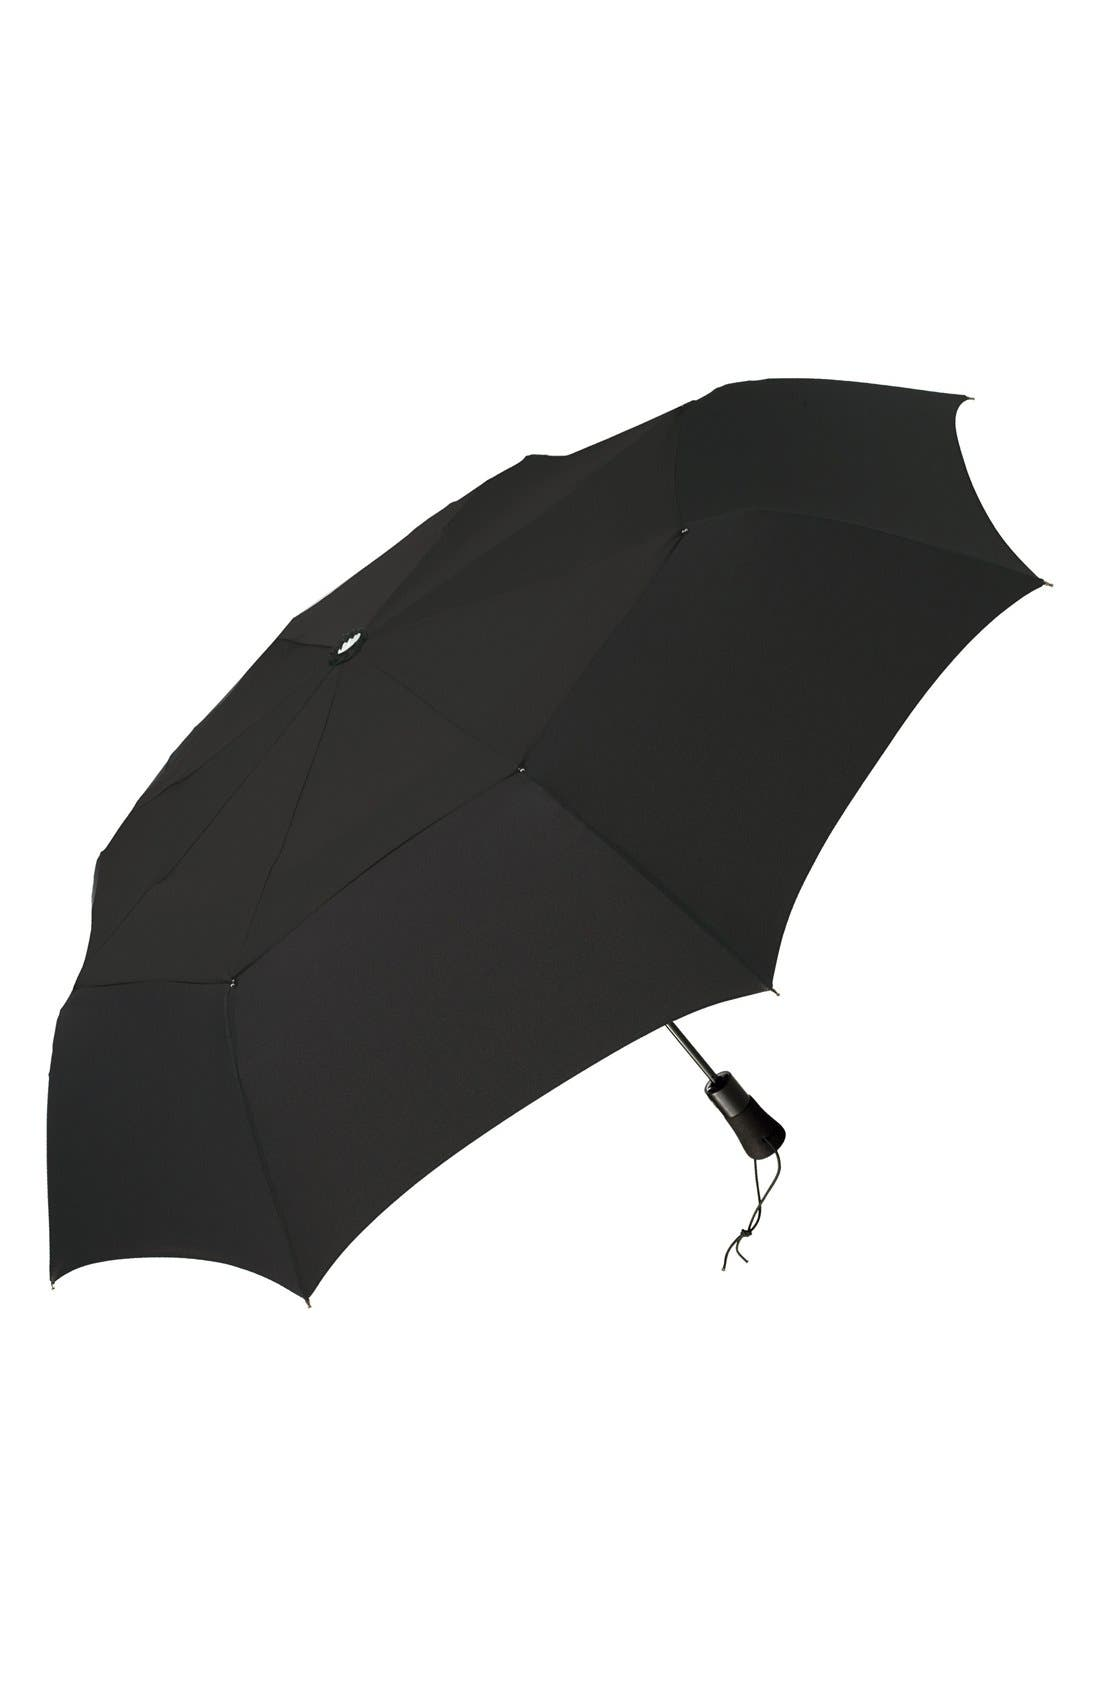 'WindPro<sup>®</sup>' Auto Open & Close Umbrella,                             Main thumbnail 1, color,                             Black